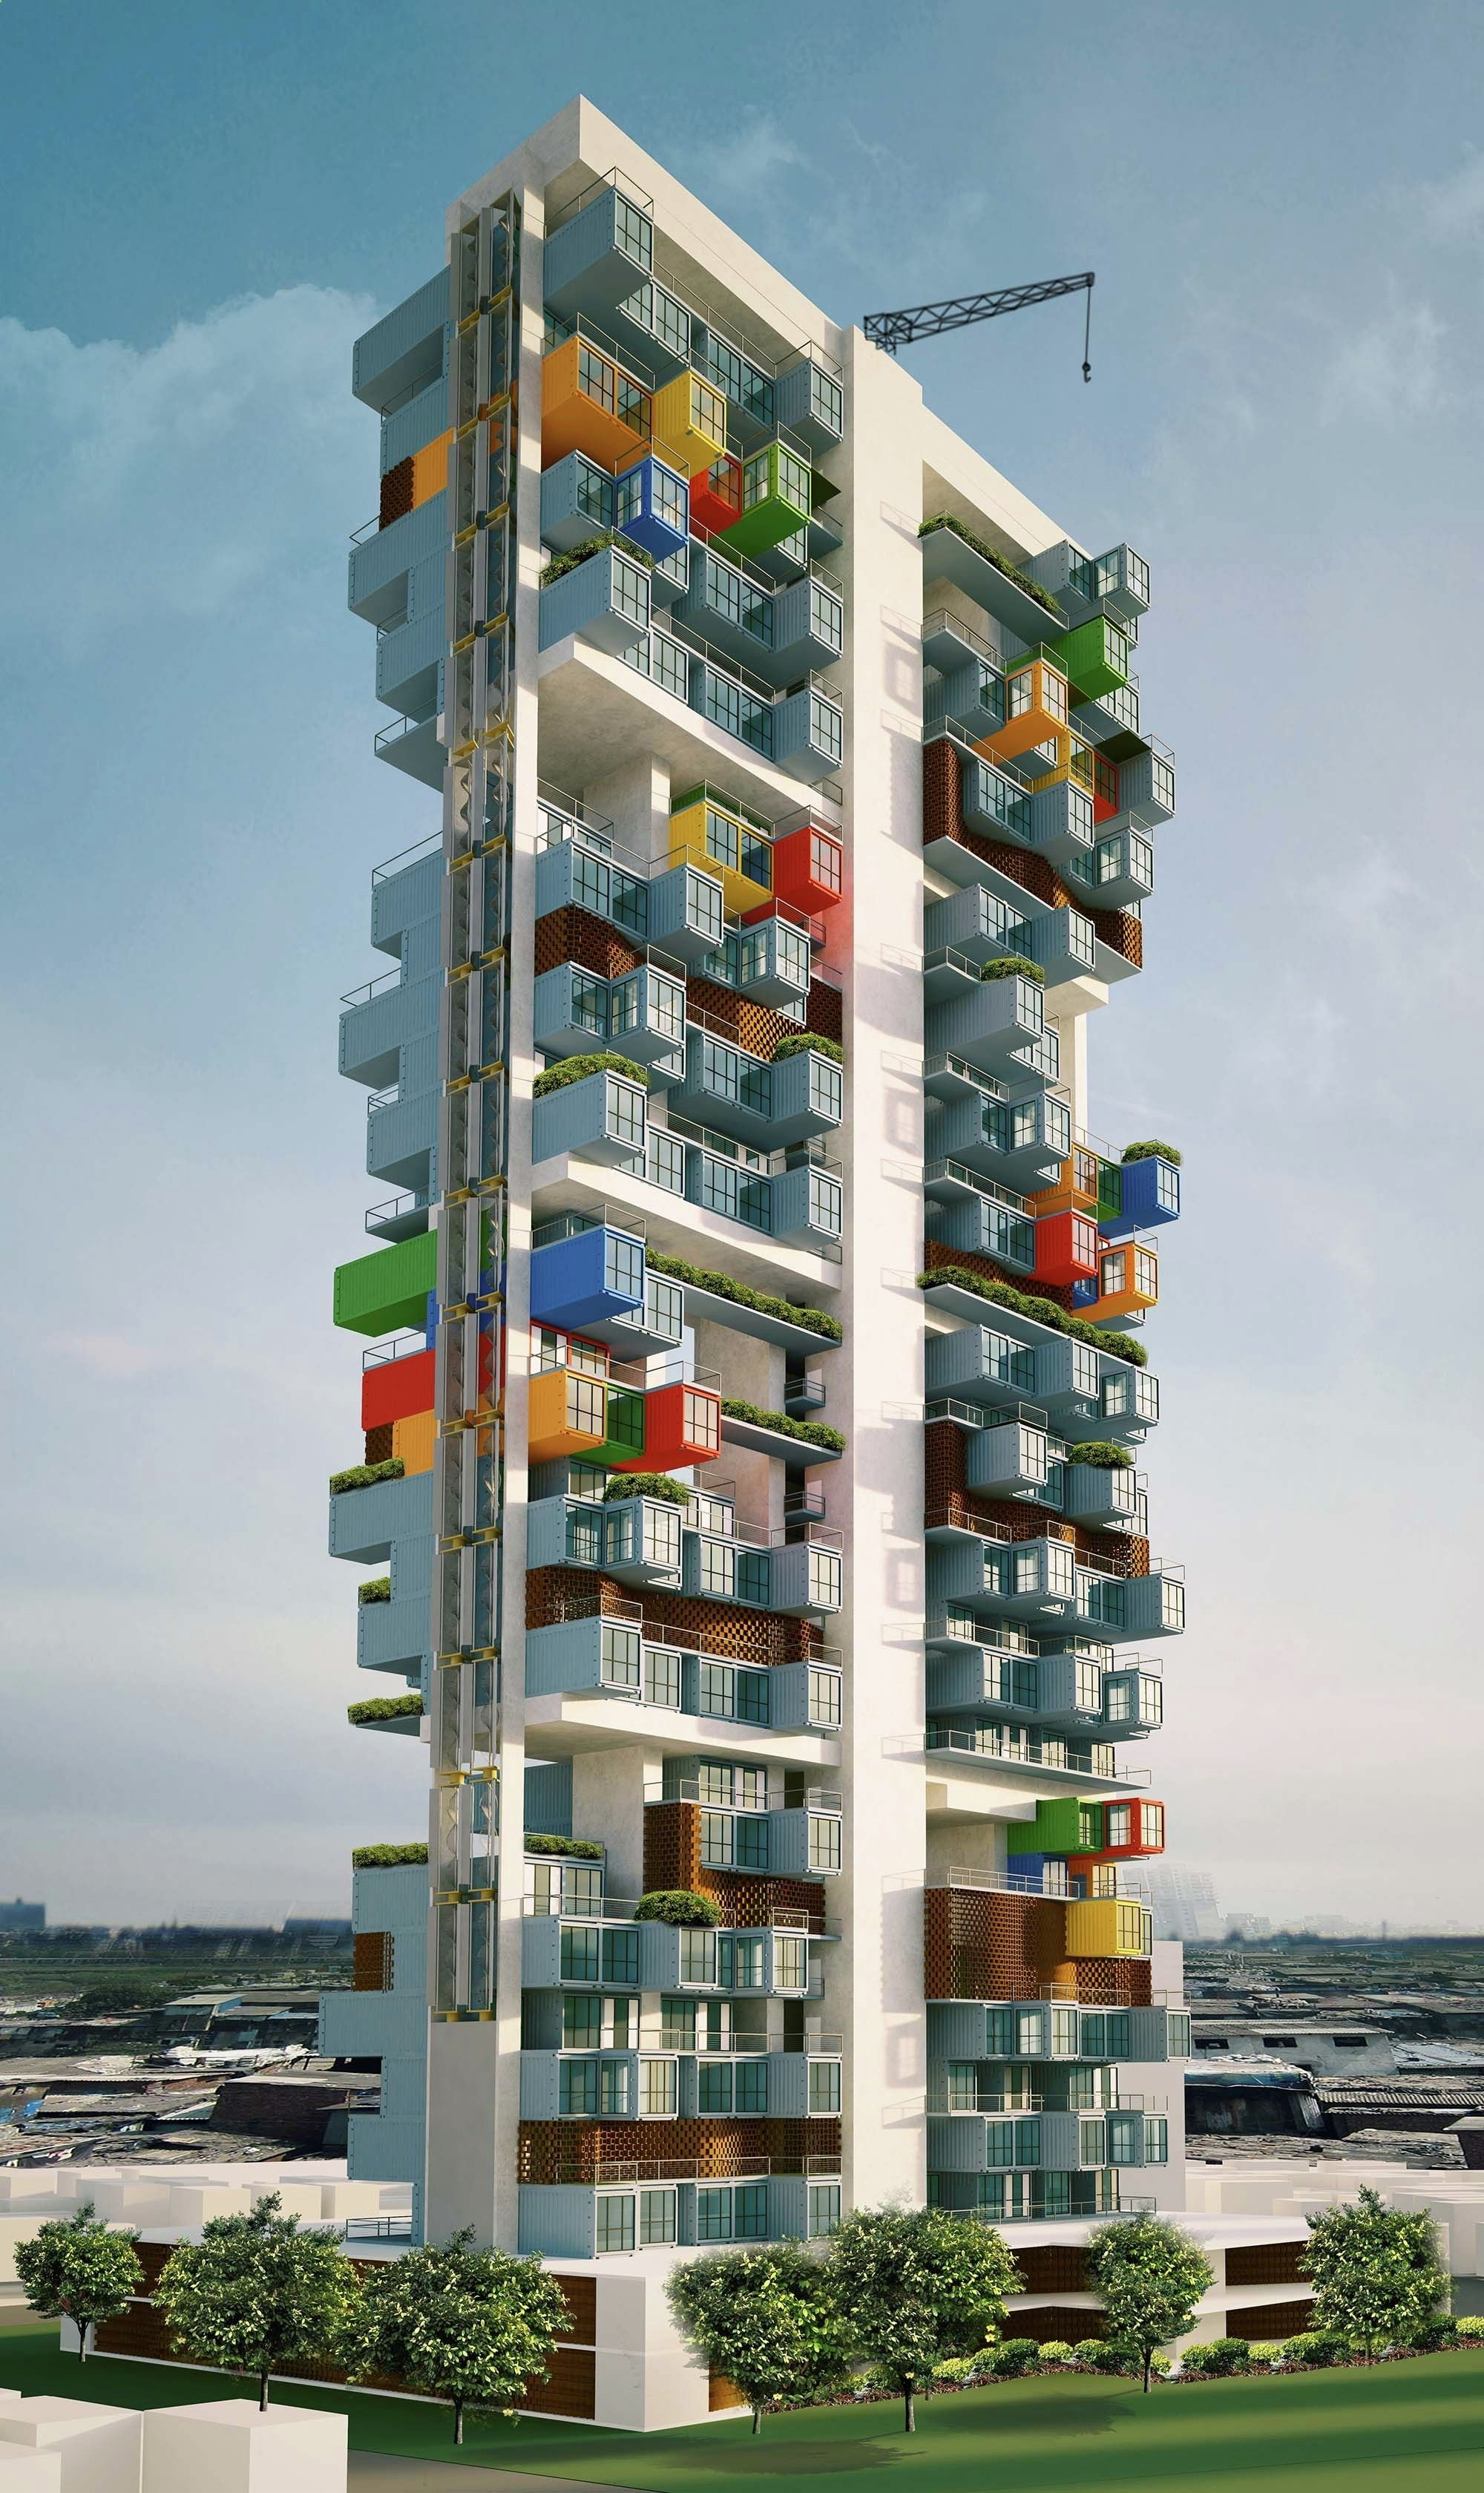 Container house gallery ga designs radical shipping skyscraper for mumbai slum also rh pinterest